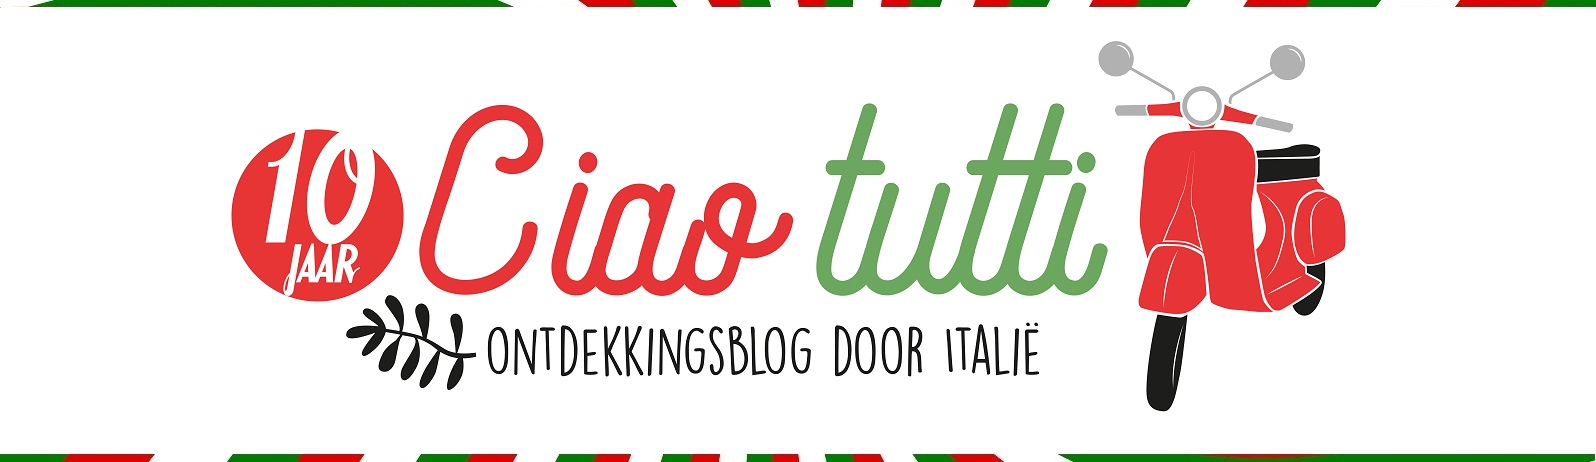 Ciao tutti – ontdekkingsblog door Italië